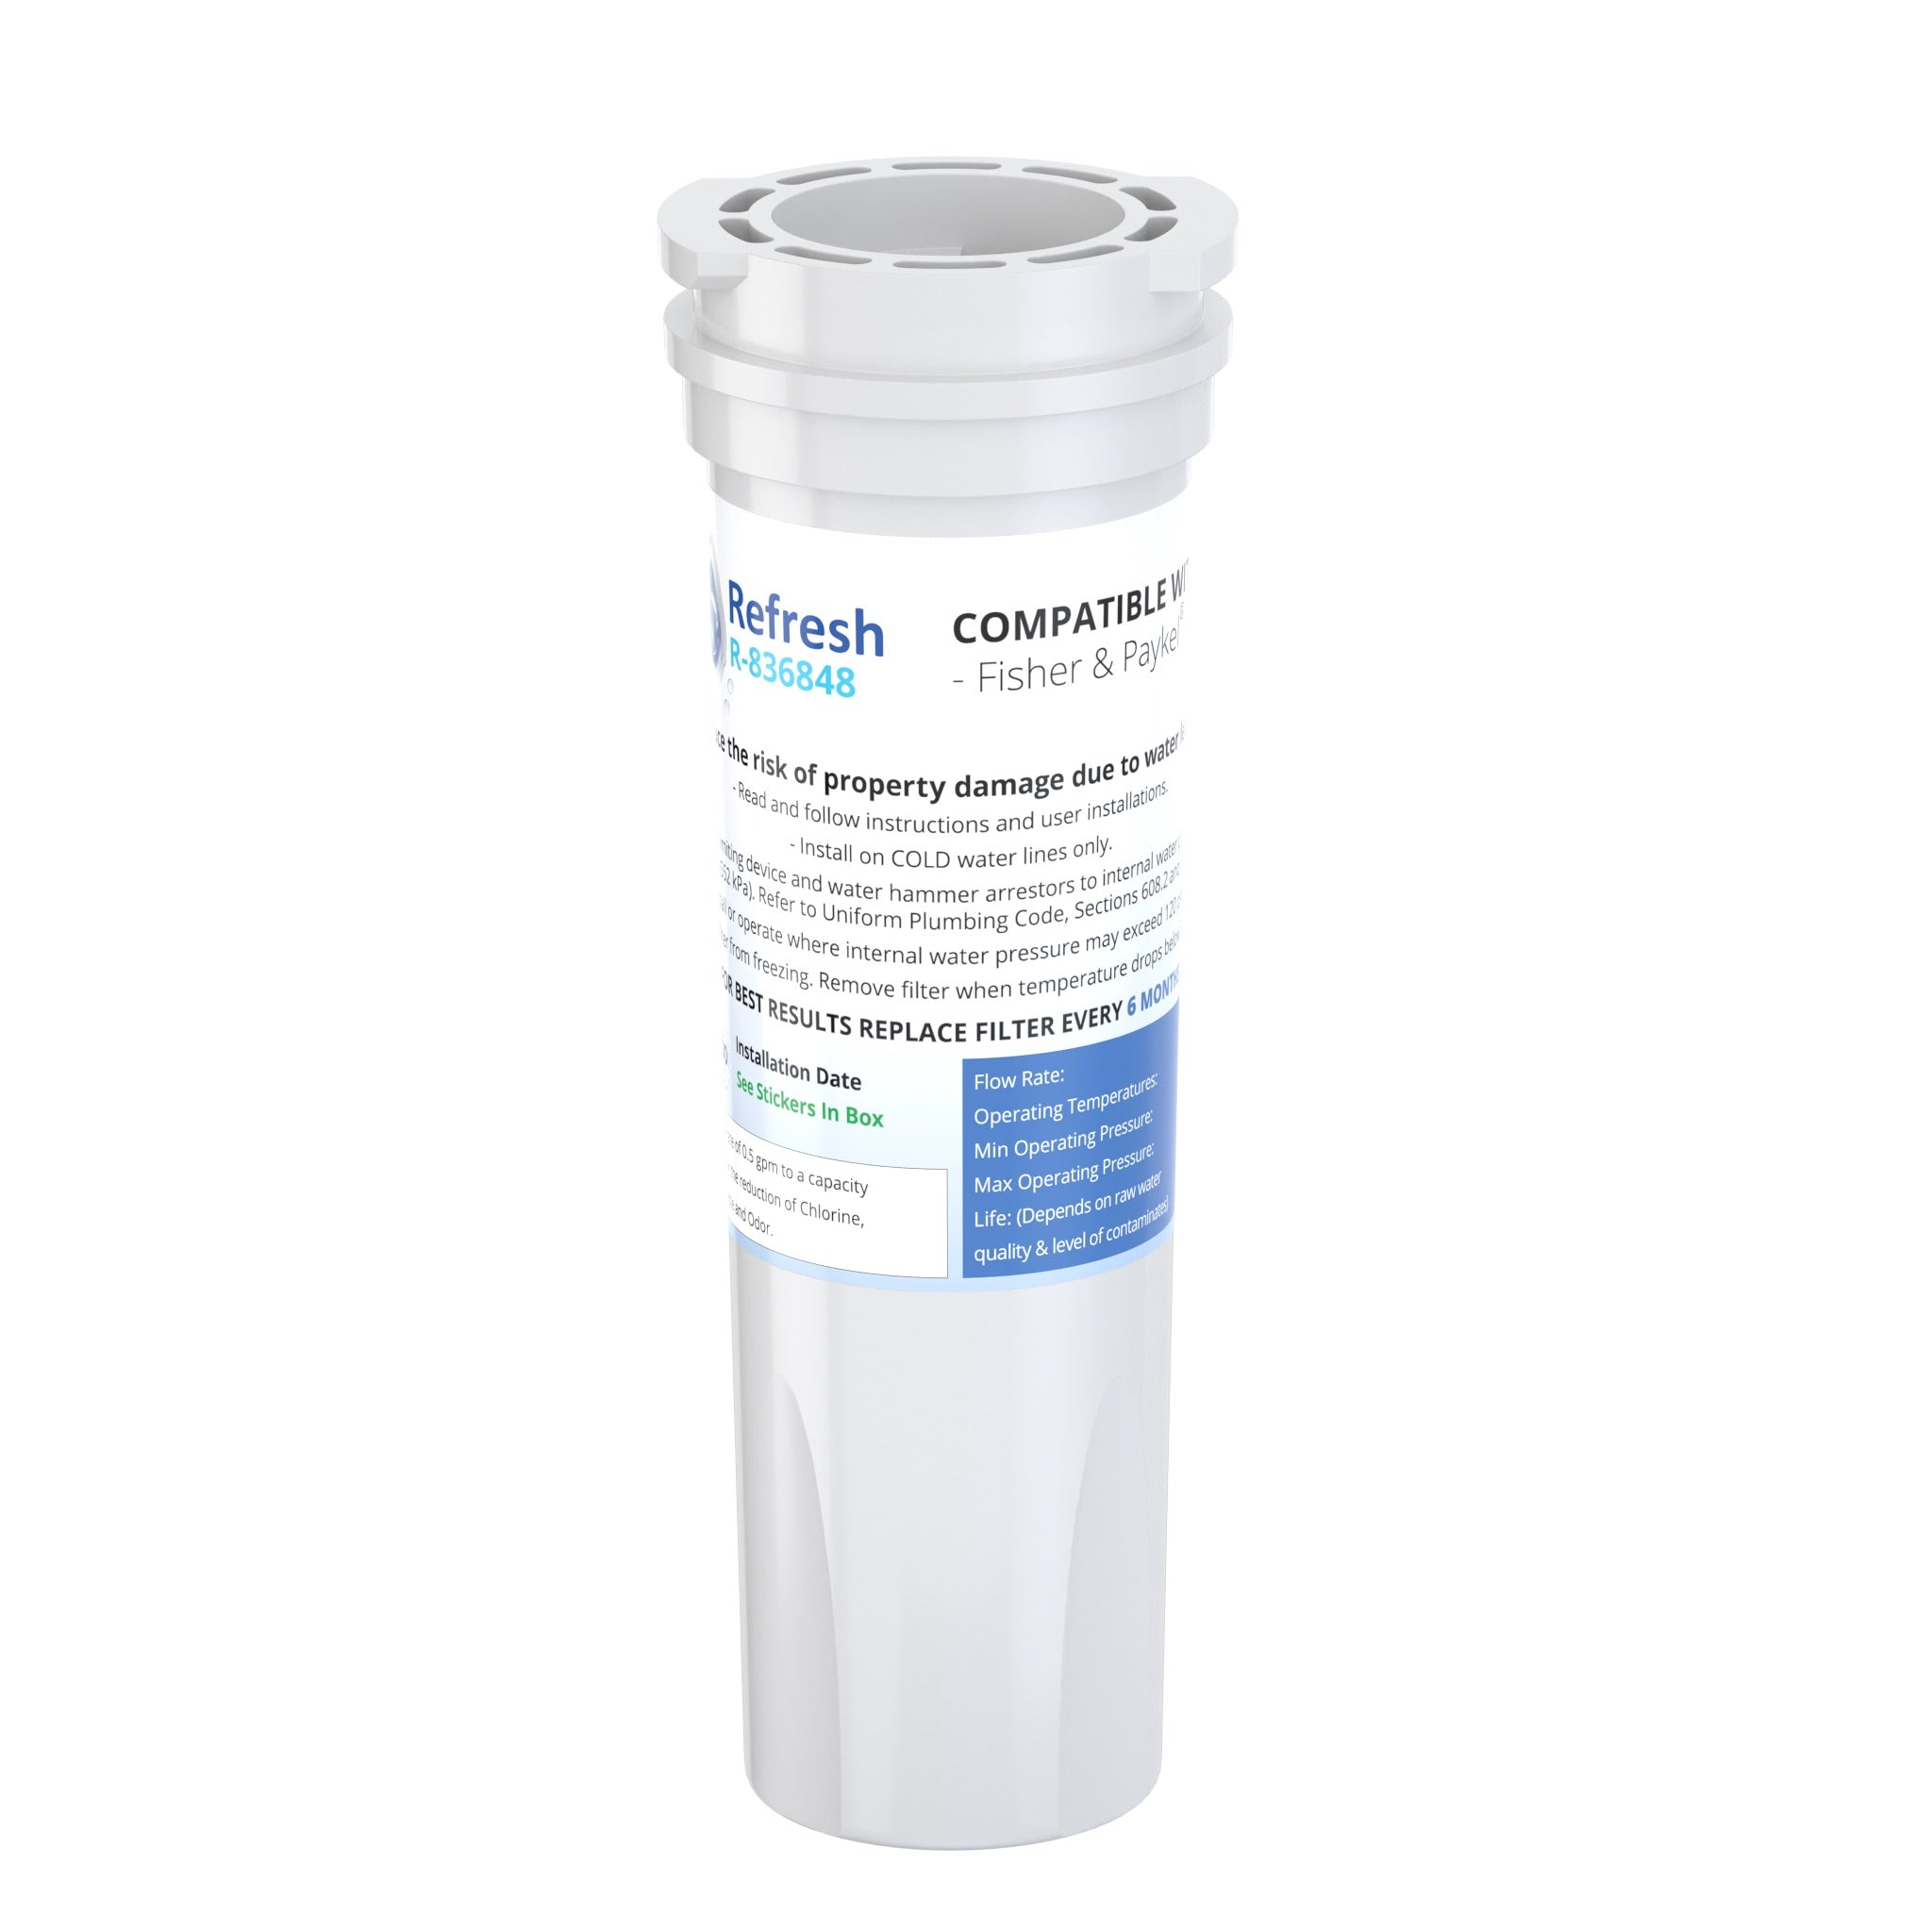 Refresh R-836848 Replacement Refrigerator Water Filter for Fisher & Paykel 836848, 836860, E522B, PS2067635, RF90A180DU, EFF-6017A, E402B, E442B, SUPCO WF296 and more!